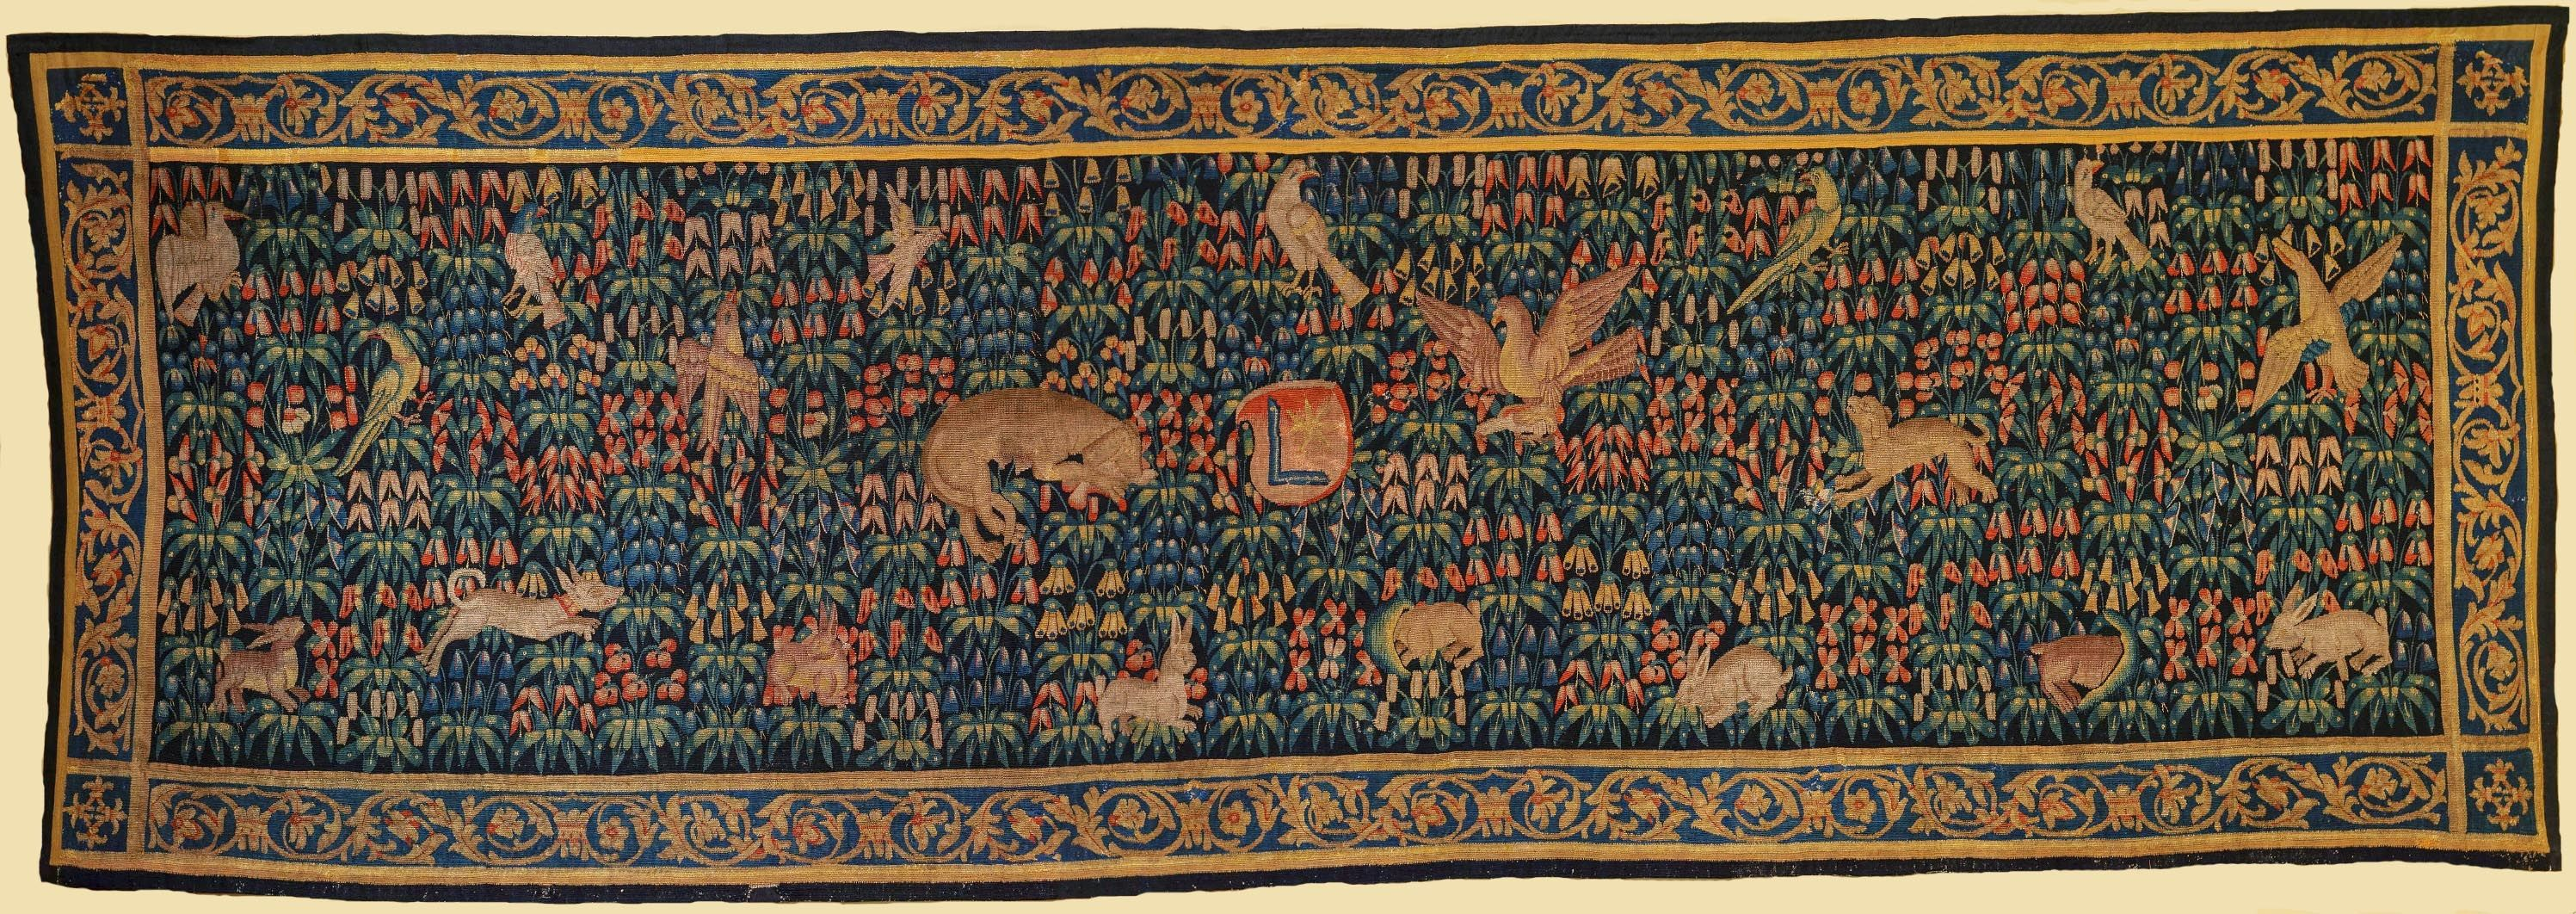 Verdure tapestry of millefleur type with coat of arms by Anonymous from Bruges, beginning of the 16th century (PD-art/old), Zamek w Pieskowej Skale